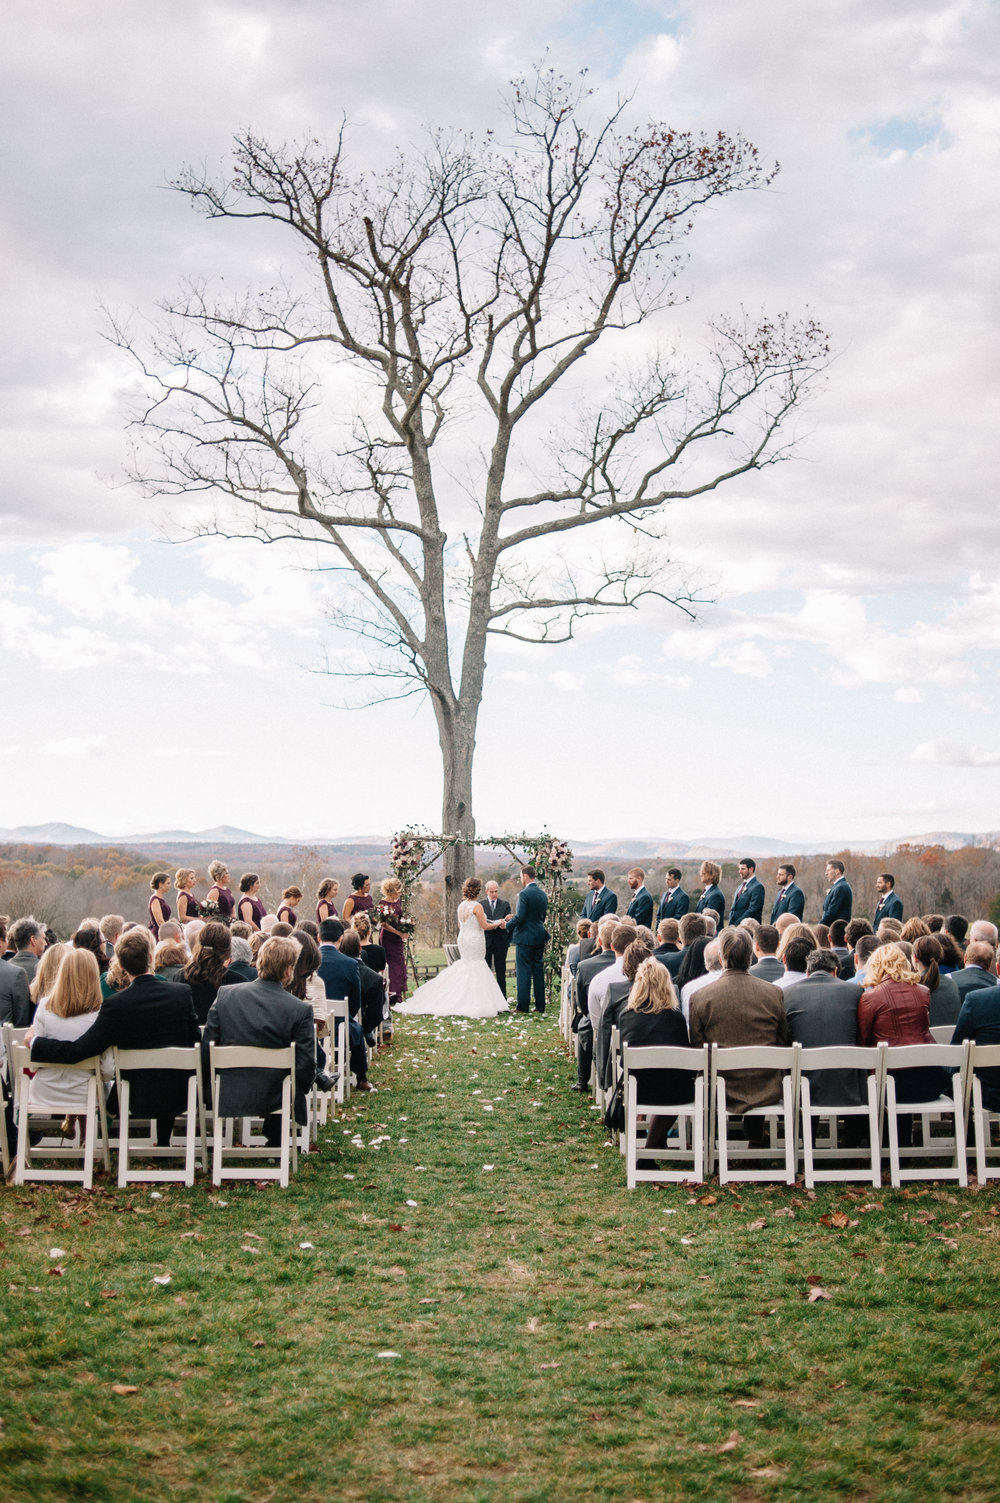 10 best wedding venues in around charlottesville virginia 10 best wedding venues in around charlottesville virginia charlottesville virginia wedding photographer sarah houston photography charlottesville junglespirit Gallery